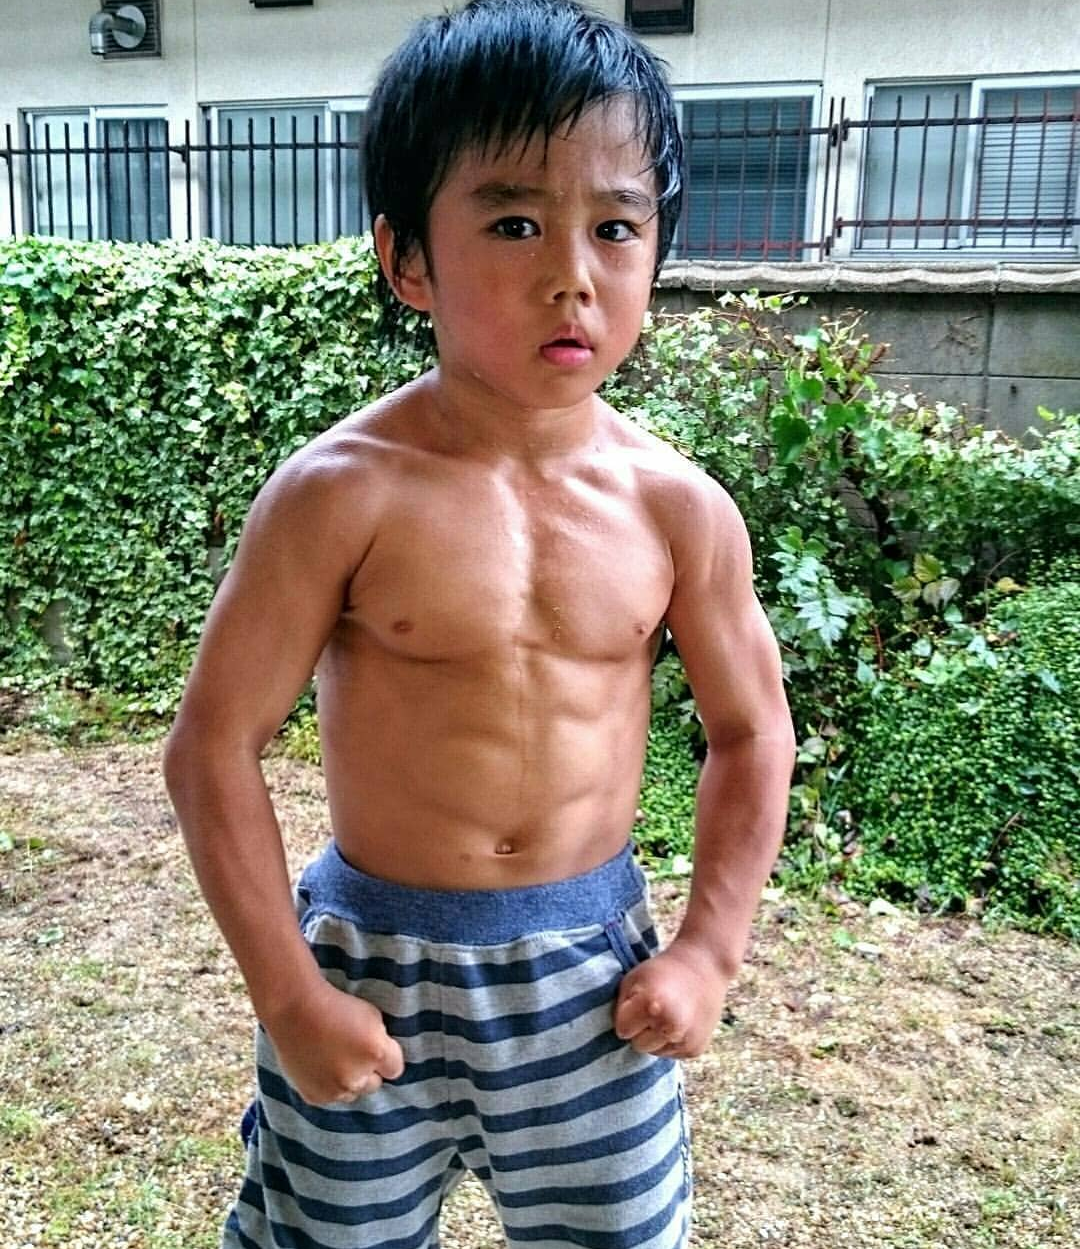 The Young Martial Artist